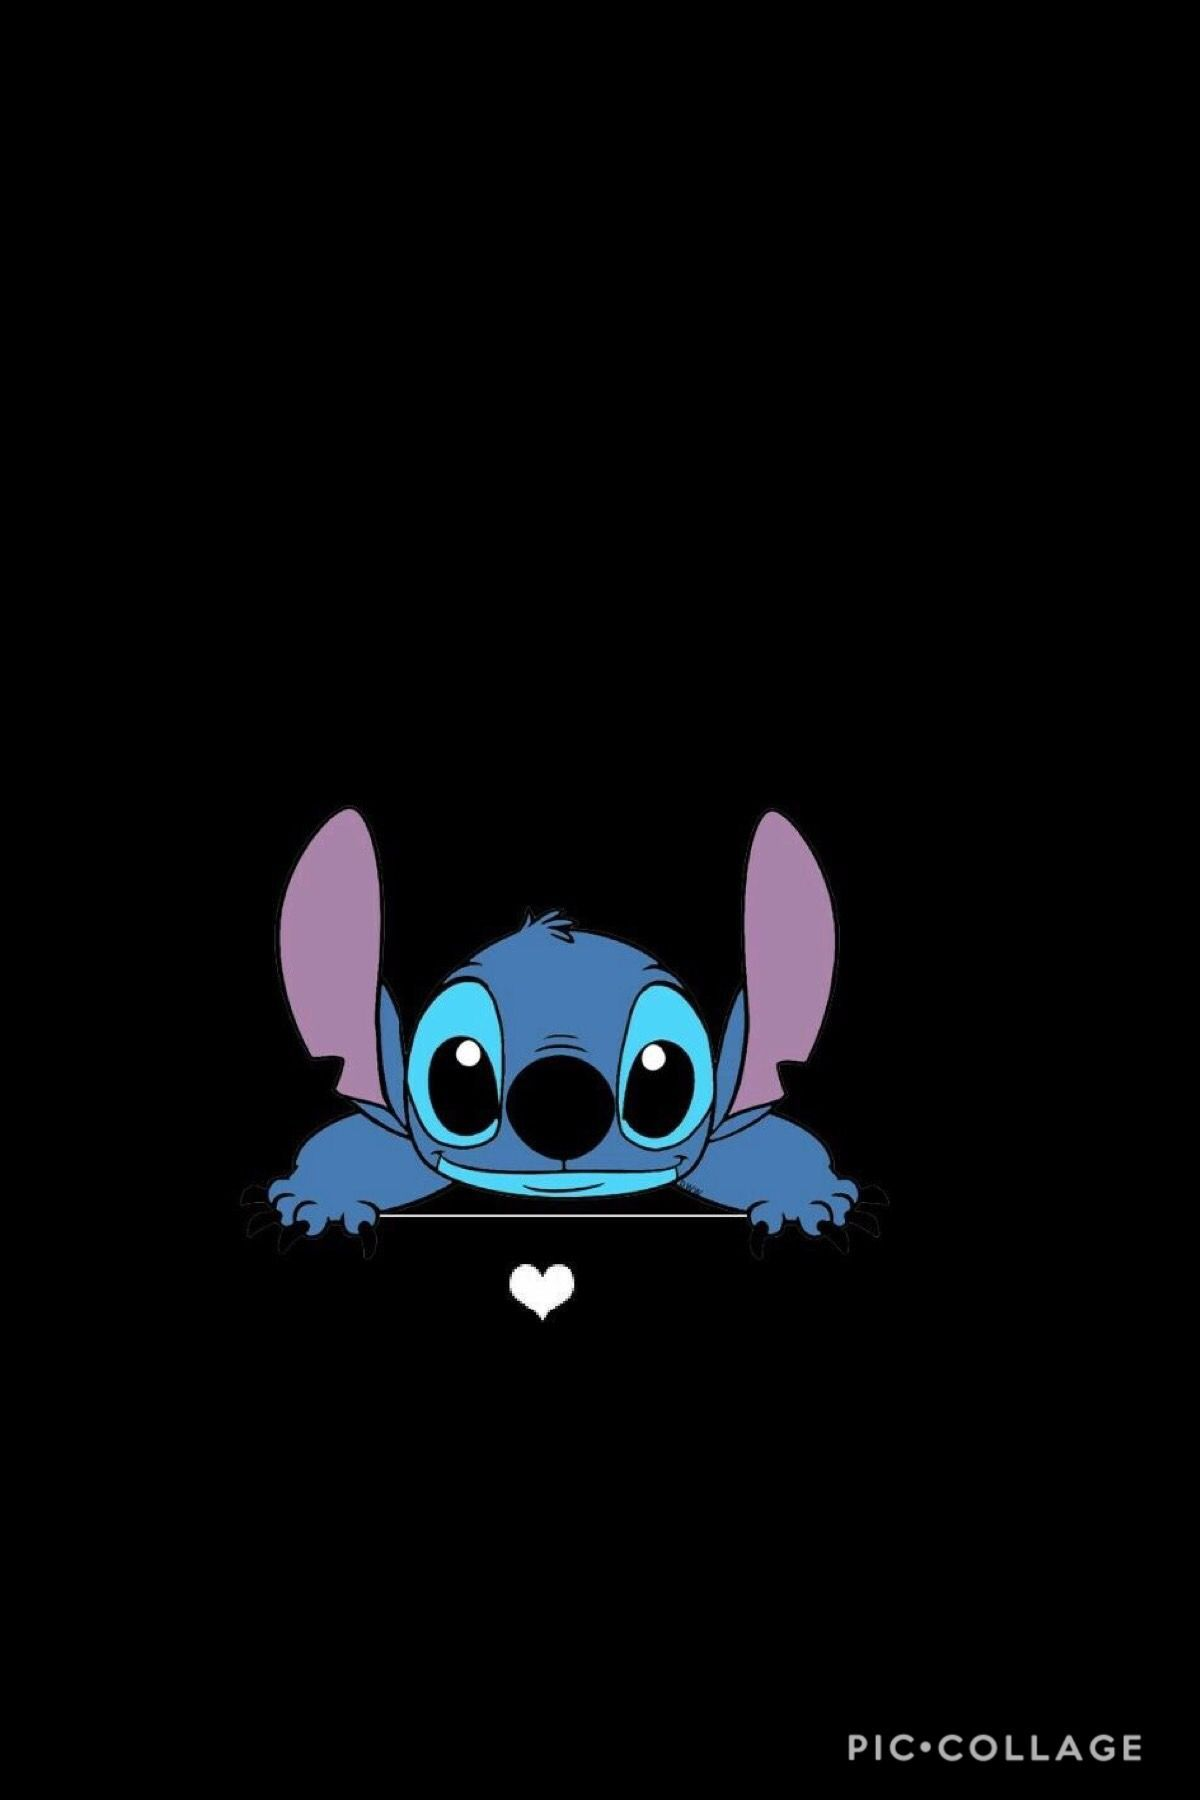 Download Cool Blue Background For Android Phone Today Wallpaper Iphone Cute Cartoon Wallpaper Iphone Wallpaper Iphone Disney